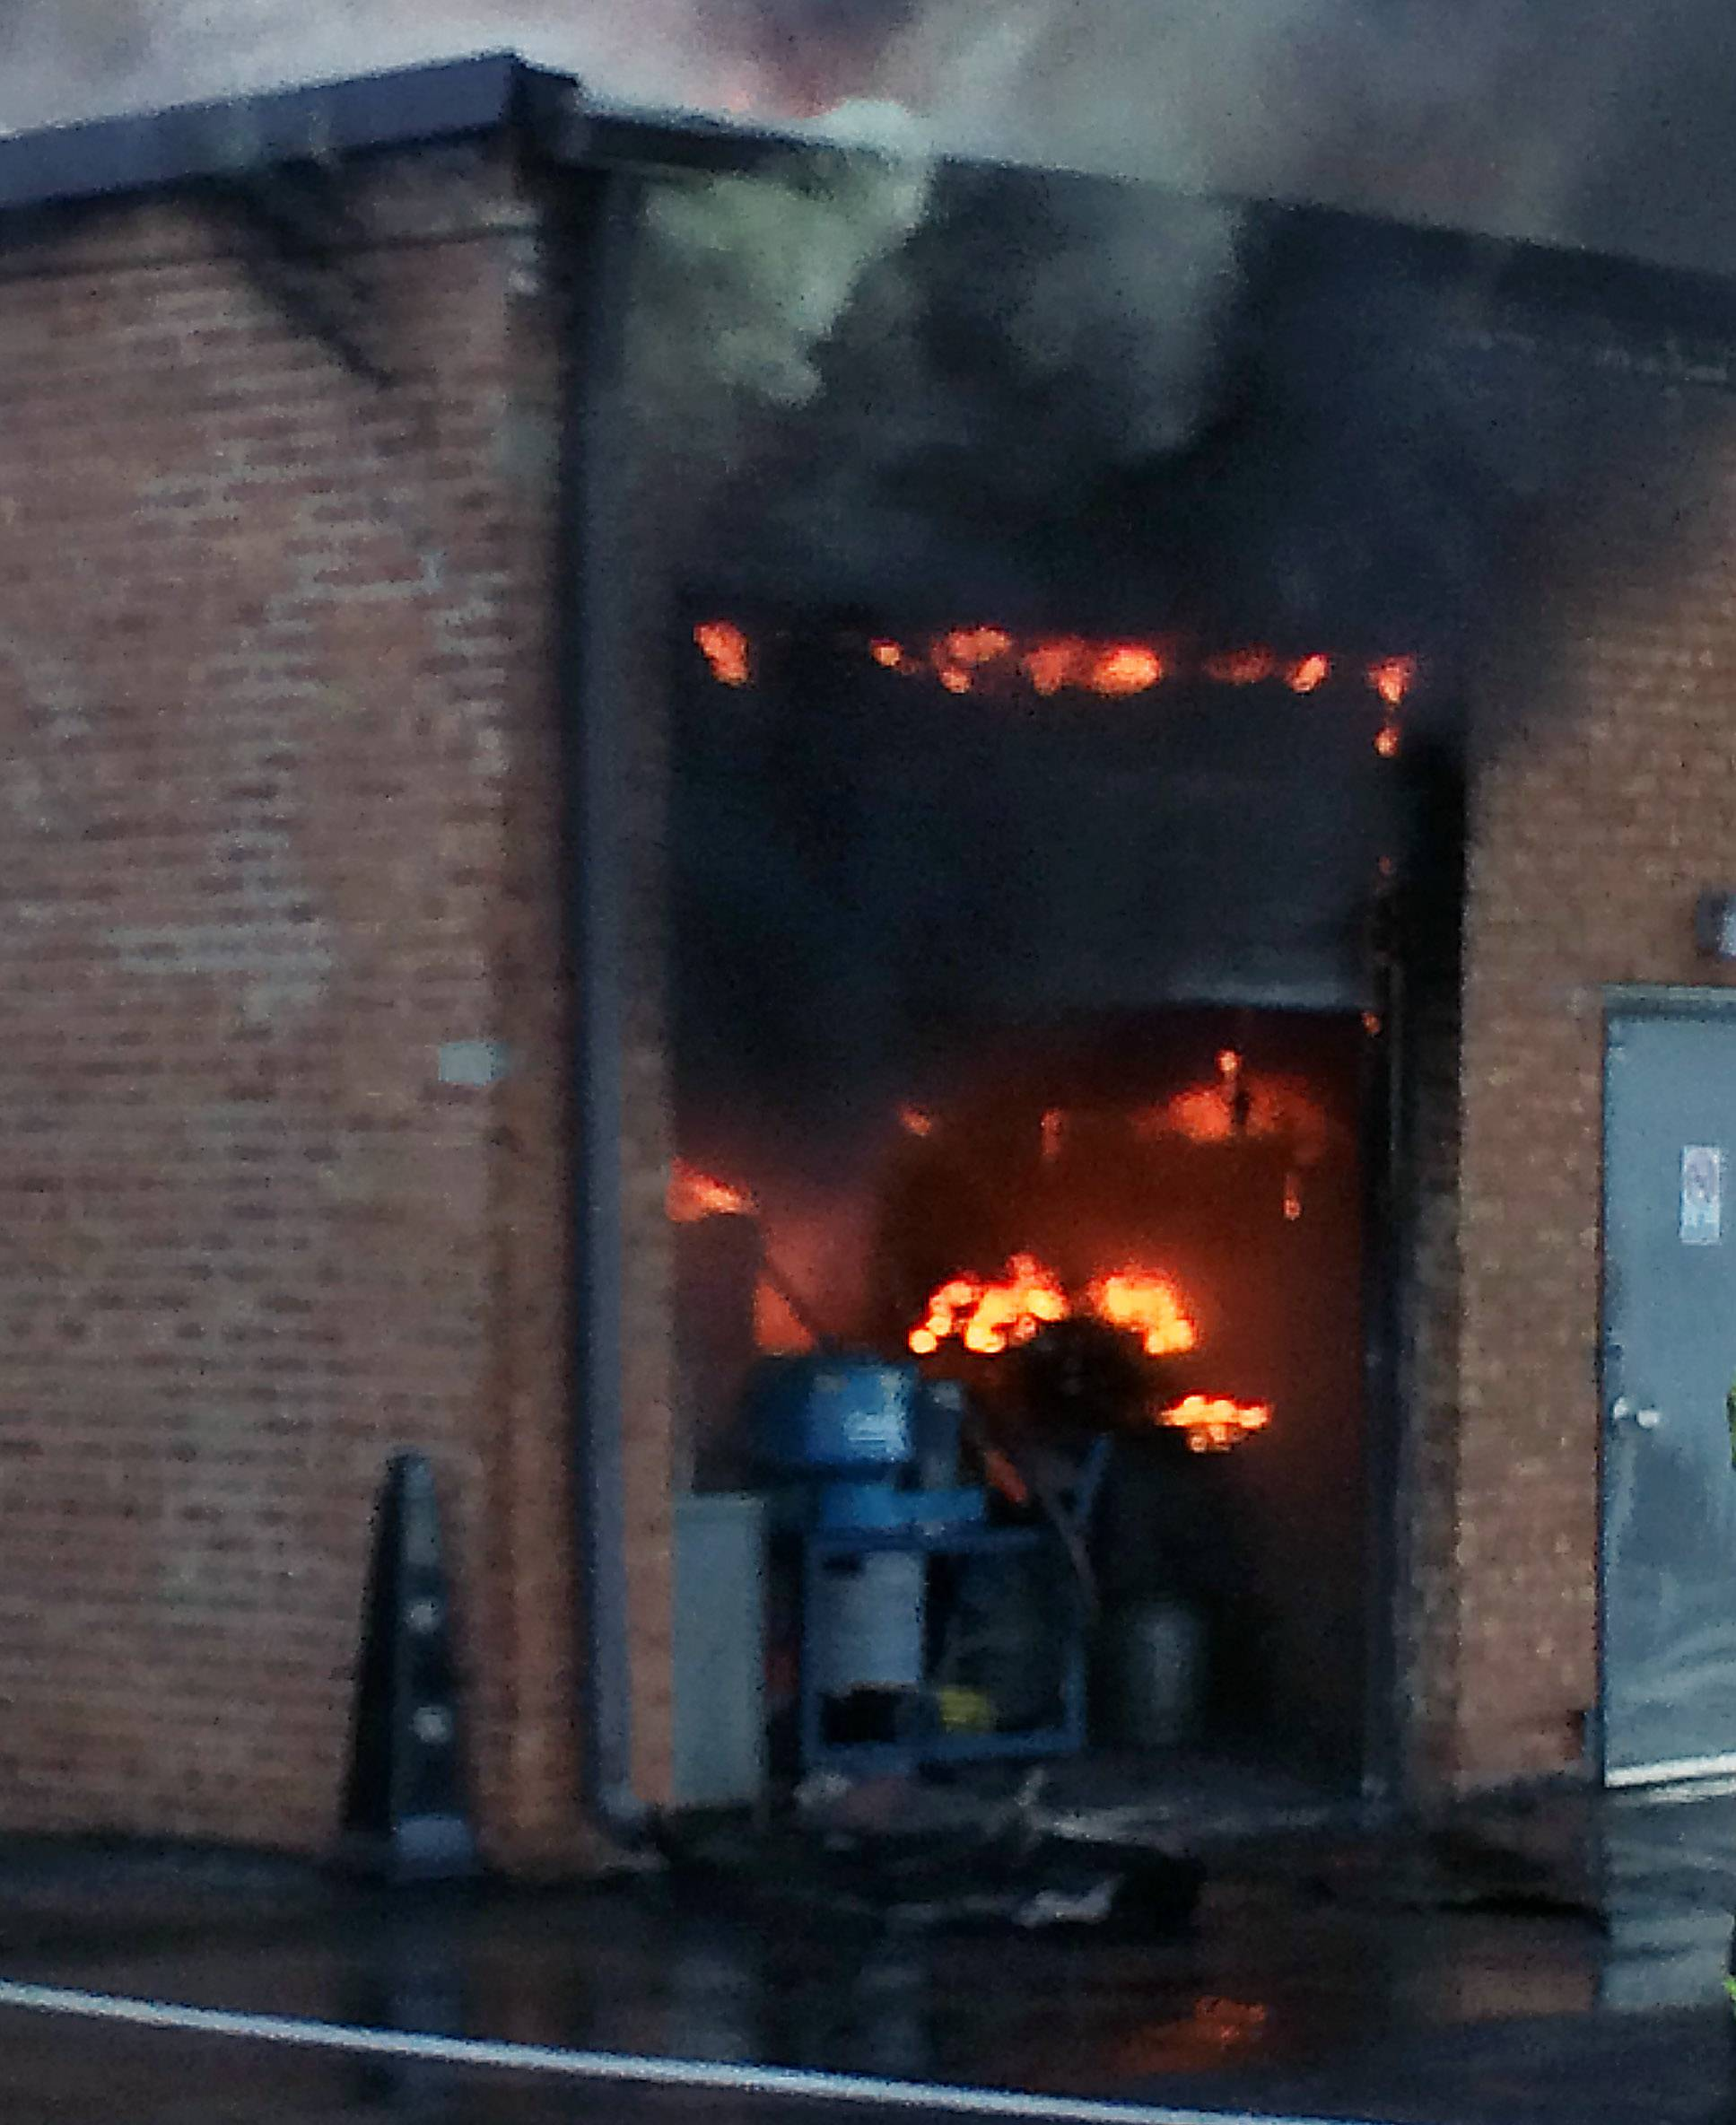 Fire is visible Tuesday morning inside Schaumburg's Taurus Tool and Engineering Inc. on the 500 block of Estes Avenue.